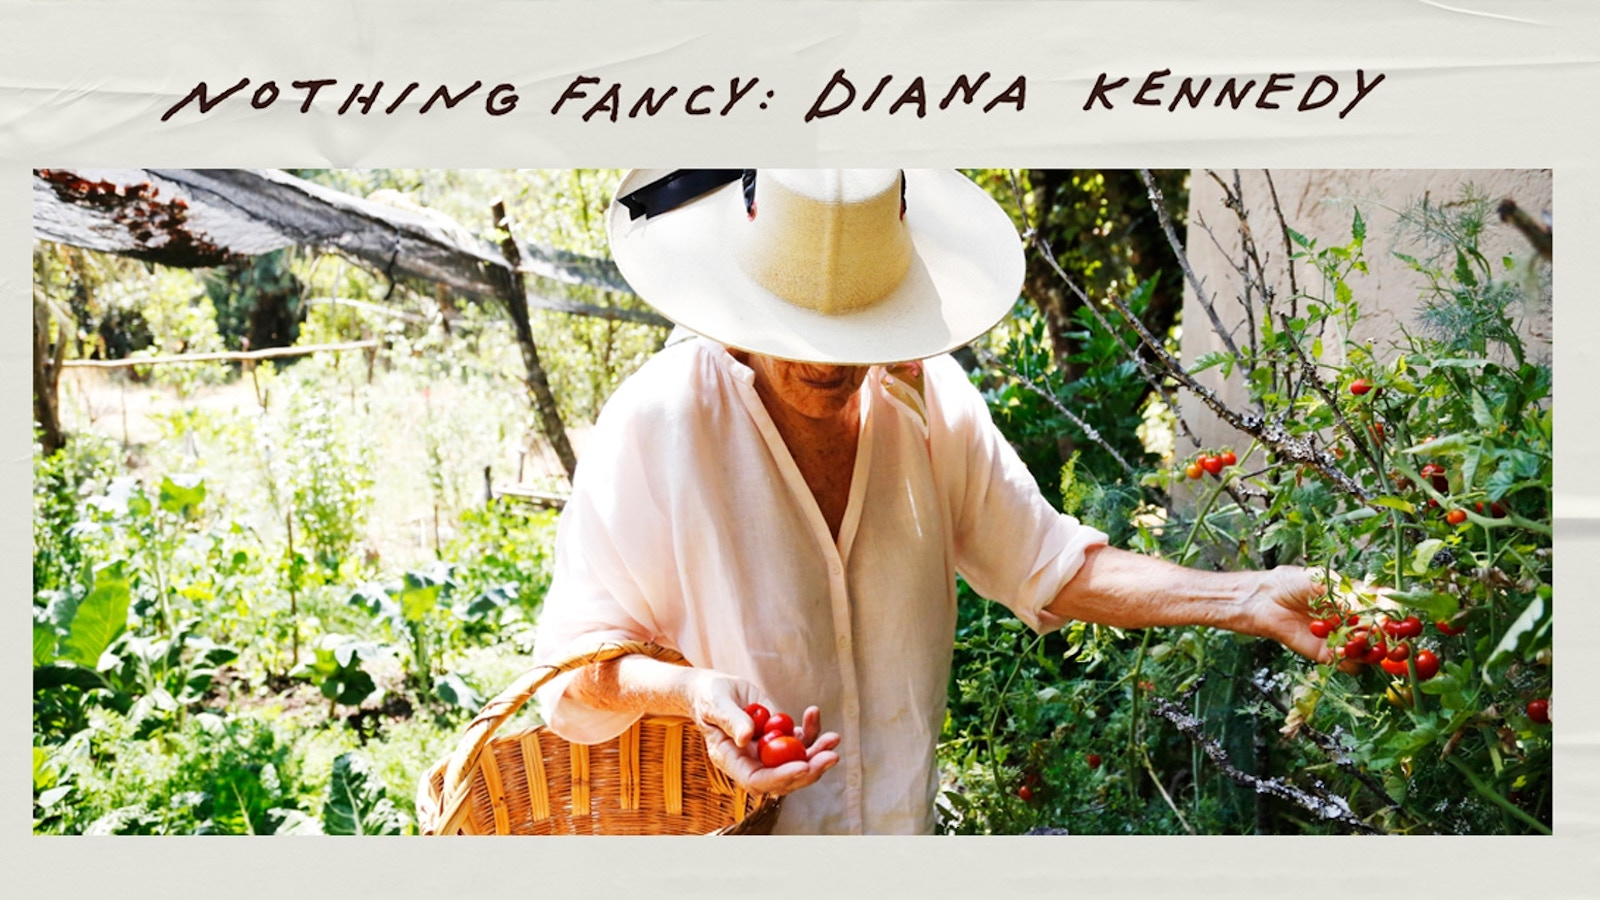 DIANE KENNEDY: NOTHING FANCY